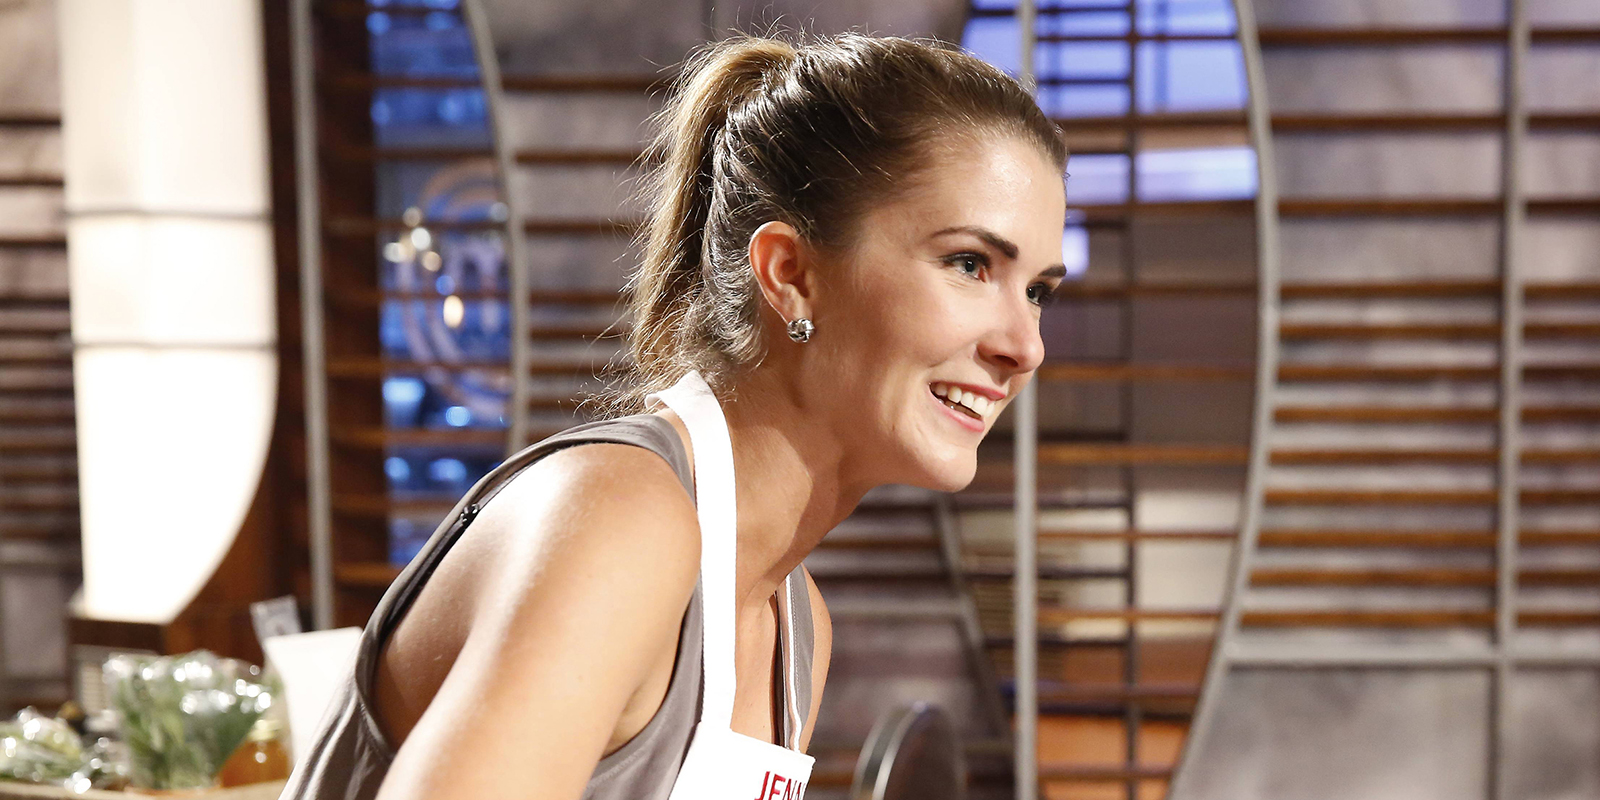 Jenny Cavellier on the set of Masterchef's 7th season